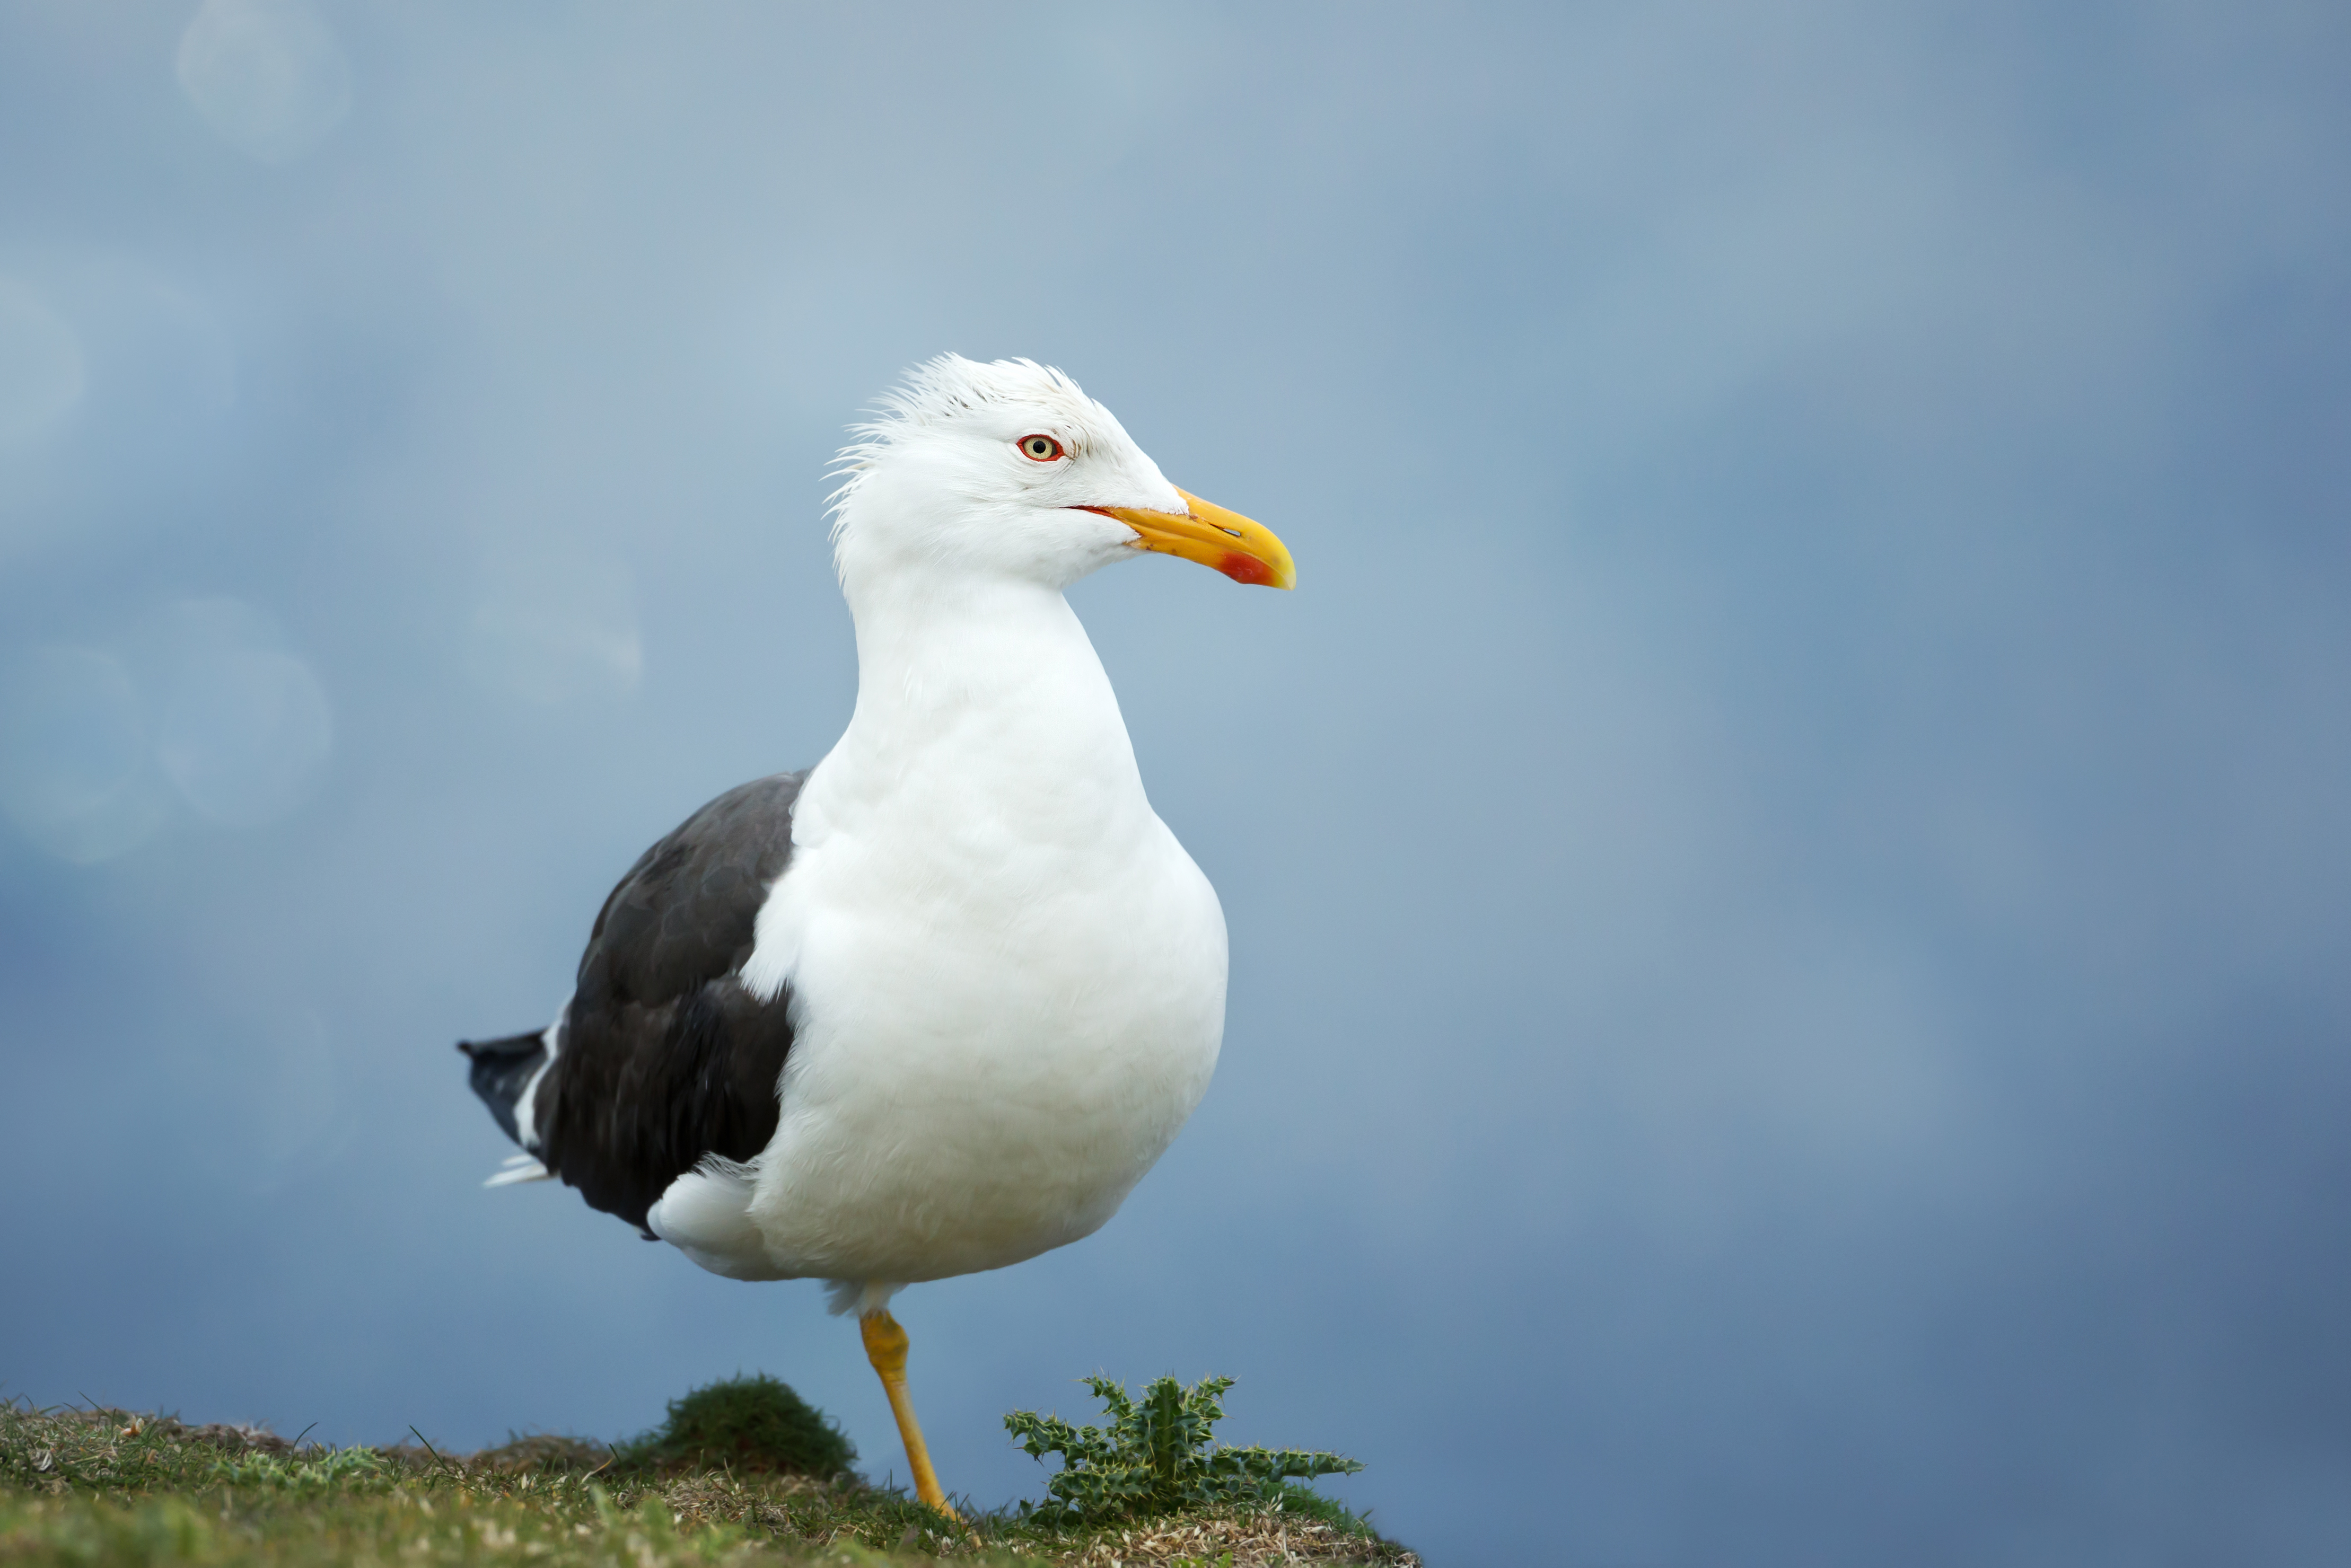 Close up of a great black backed gull against blue background, UK.